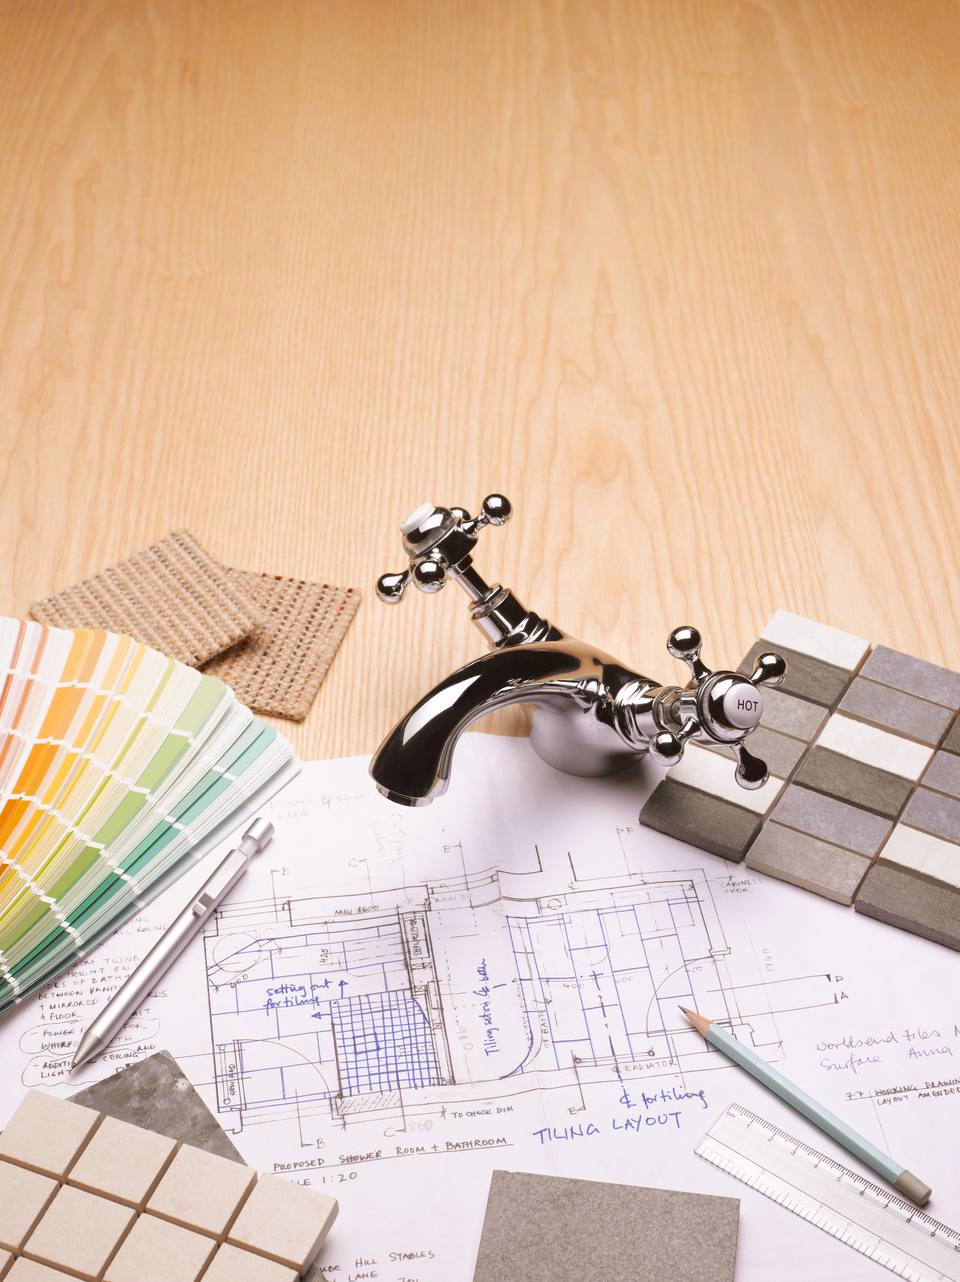 Paint and tile samples, faucet, and blueprints for bathroom